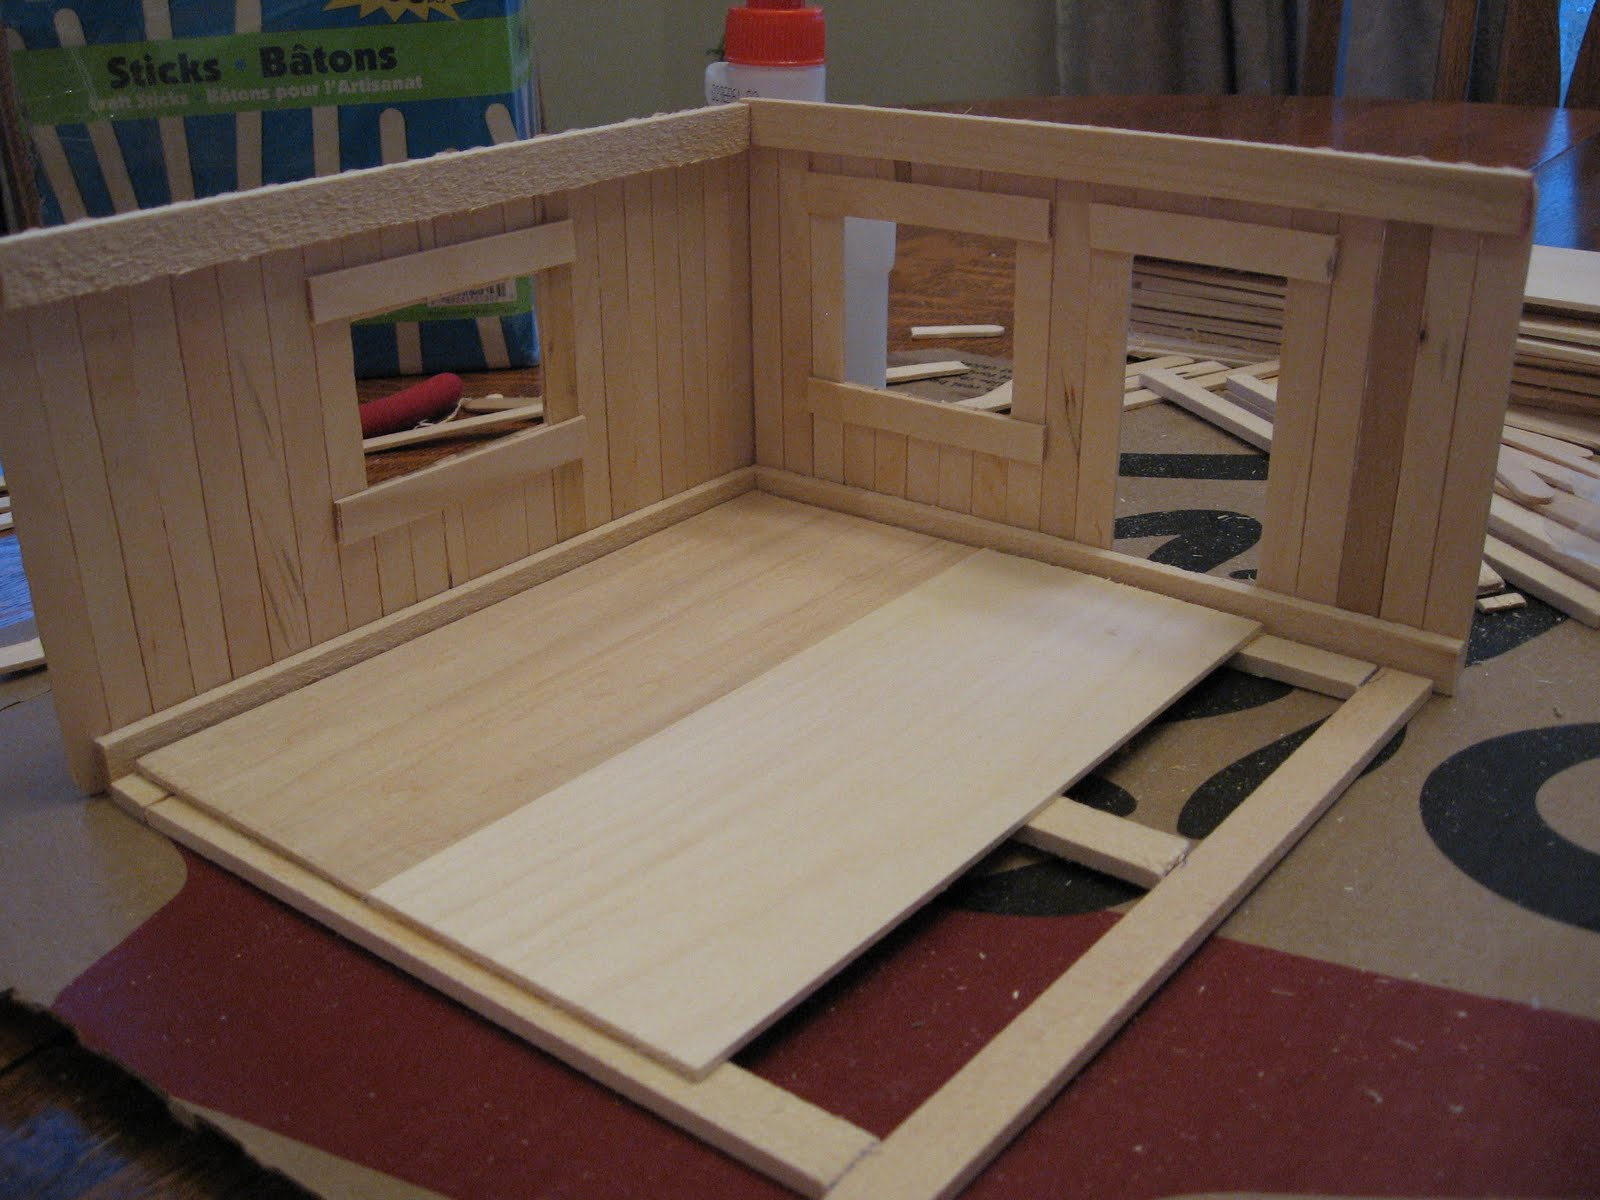 House design using popsicle sticks - Almost Unschoolers Basswood And Popsicle Stick Doll House Man Of The House Style